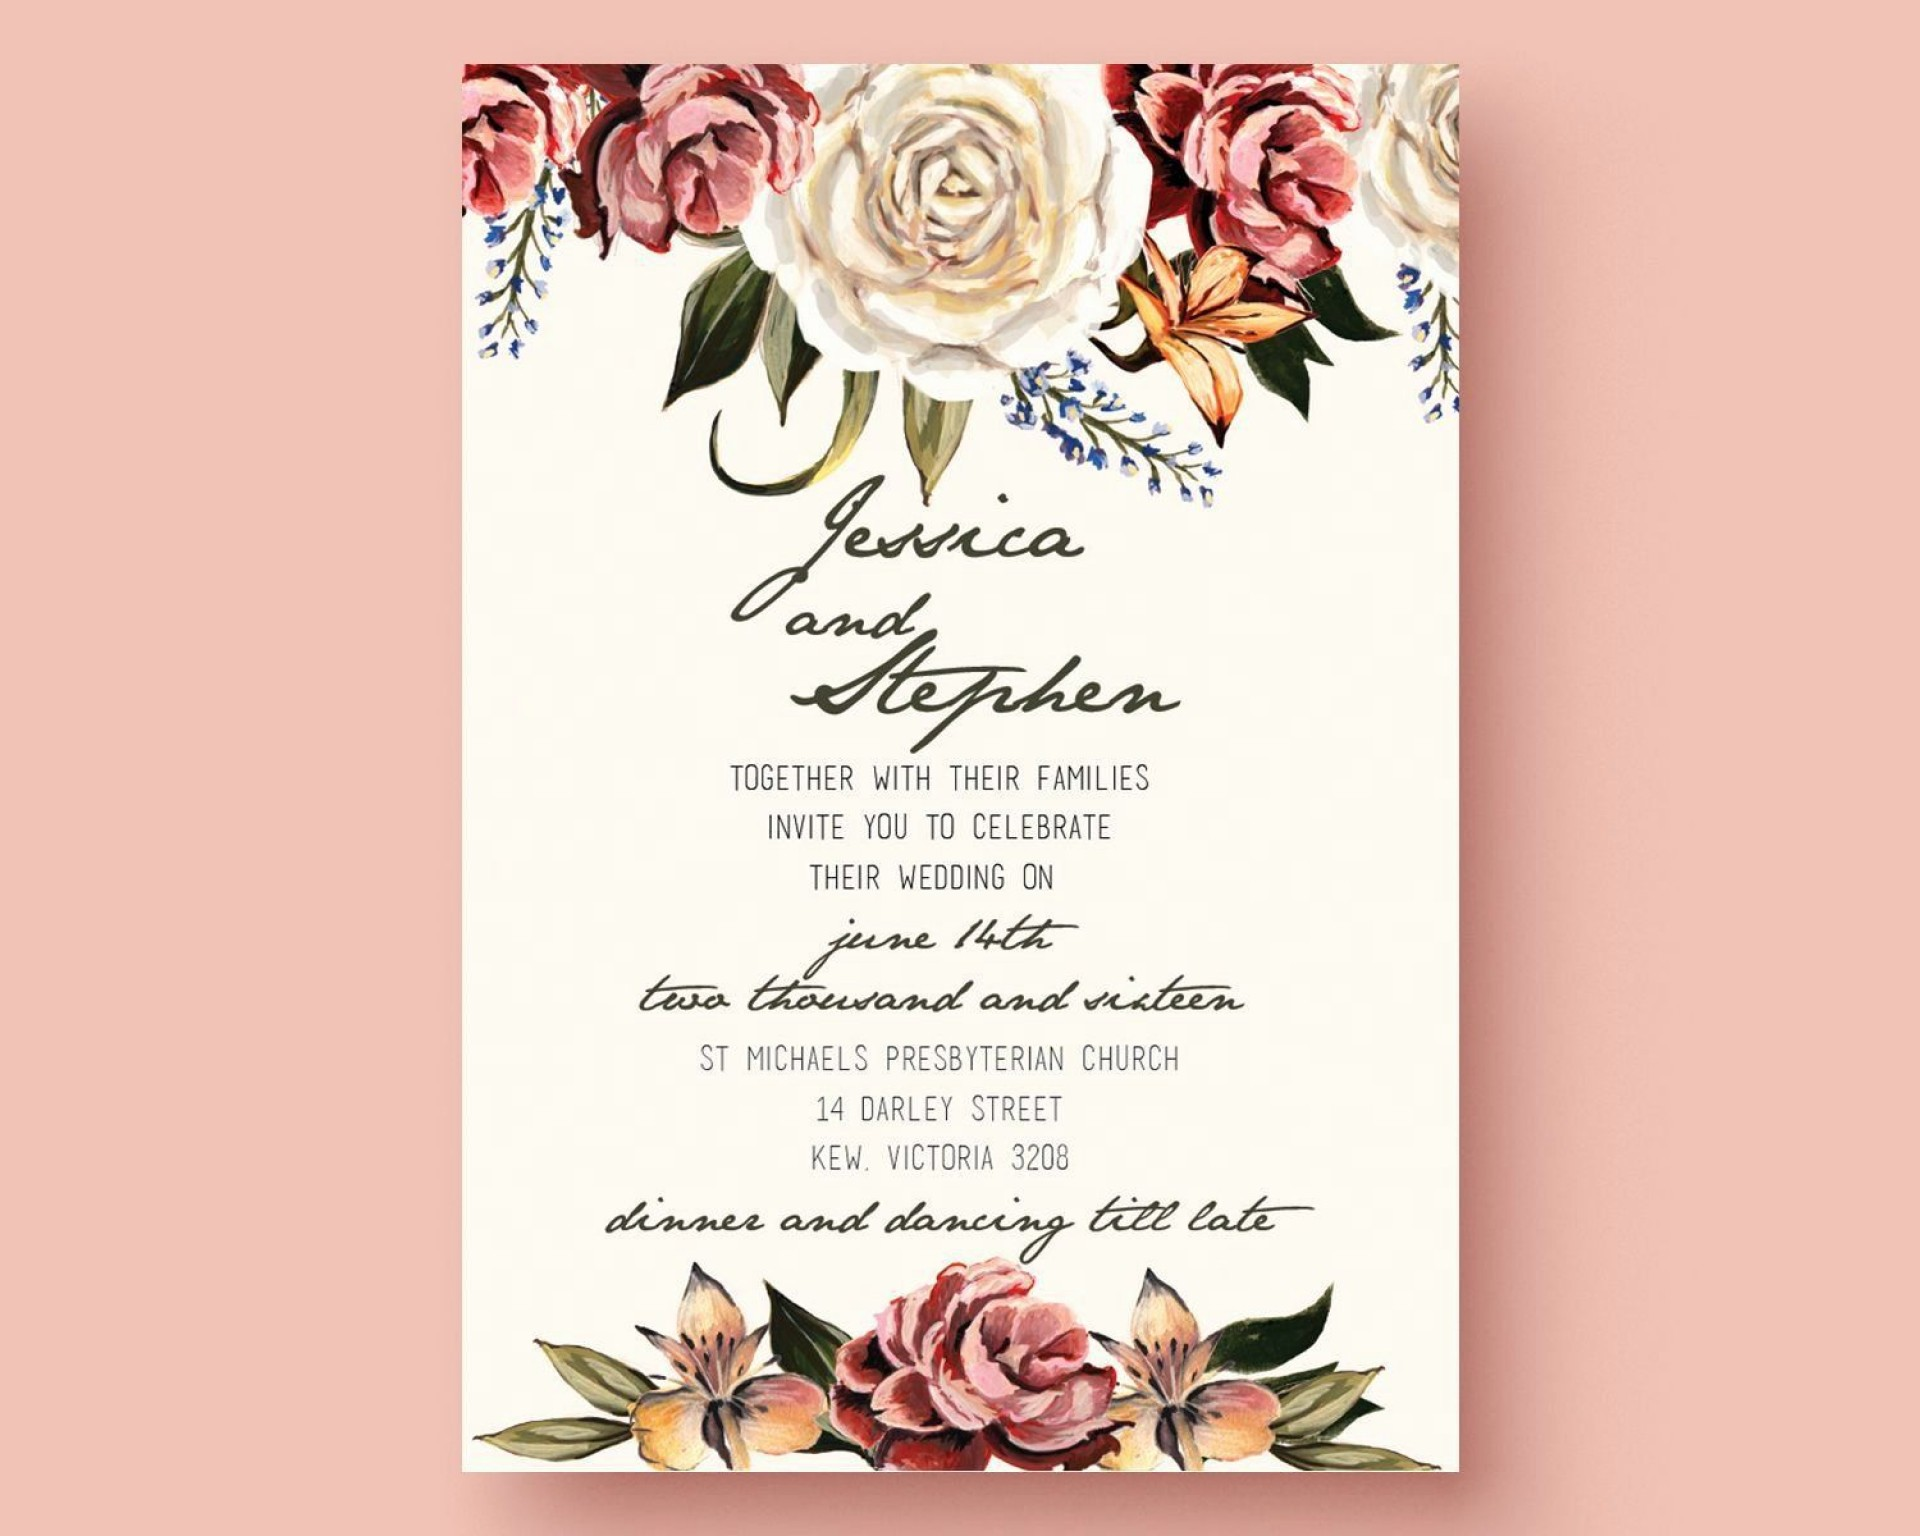 002 Unusual Free Wedding Invitation Template Download Sample  Psd Card Indian1920